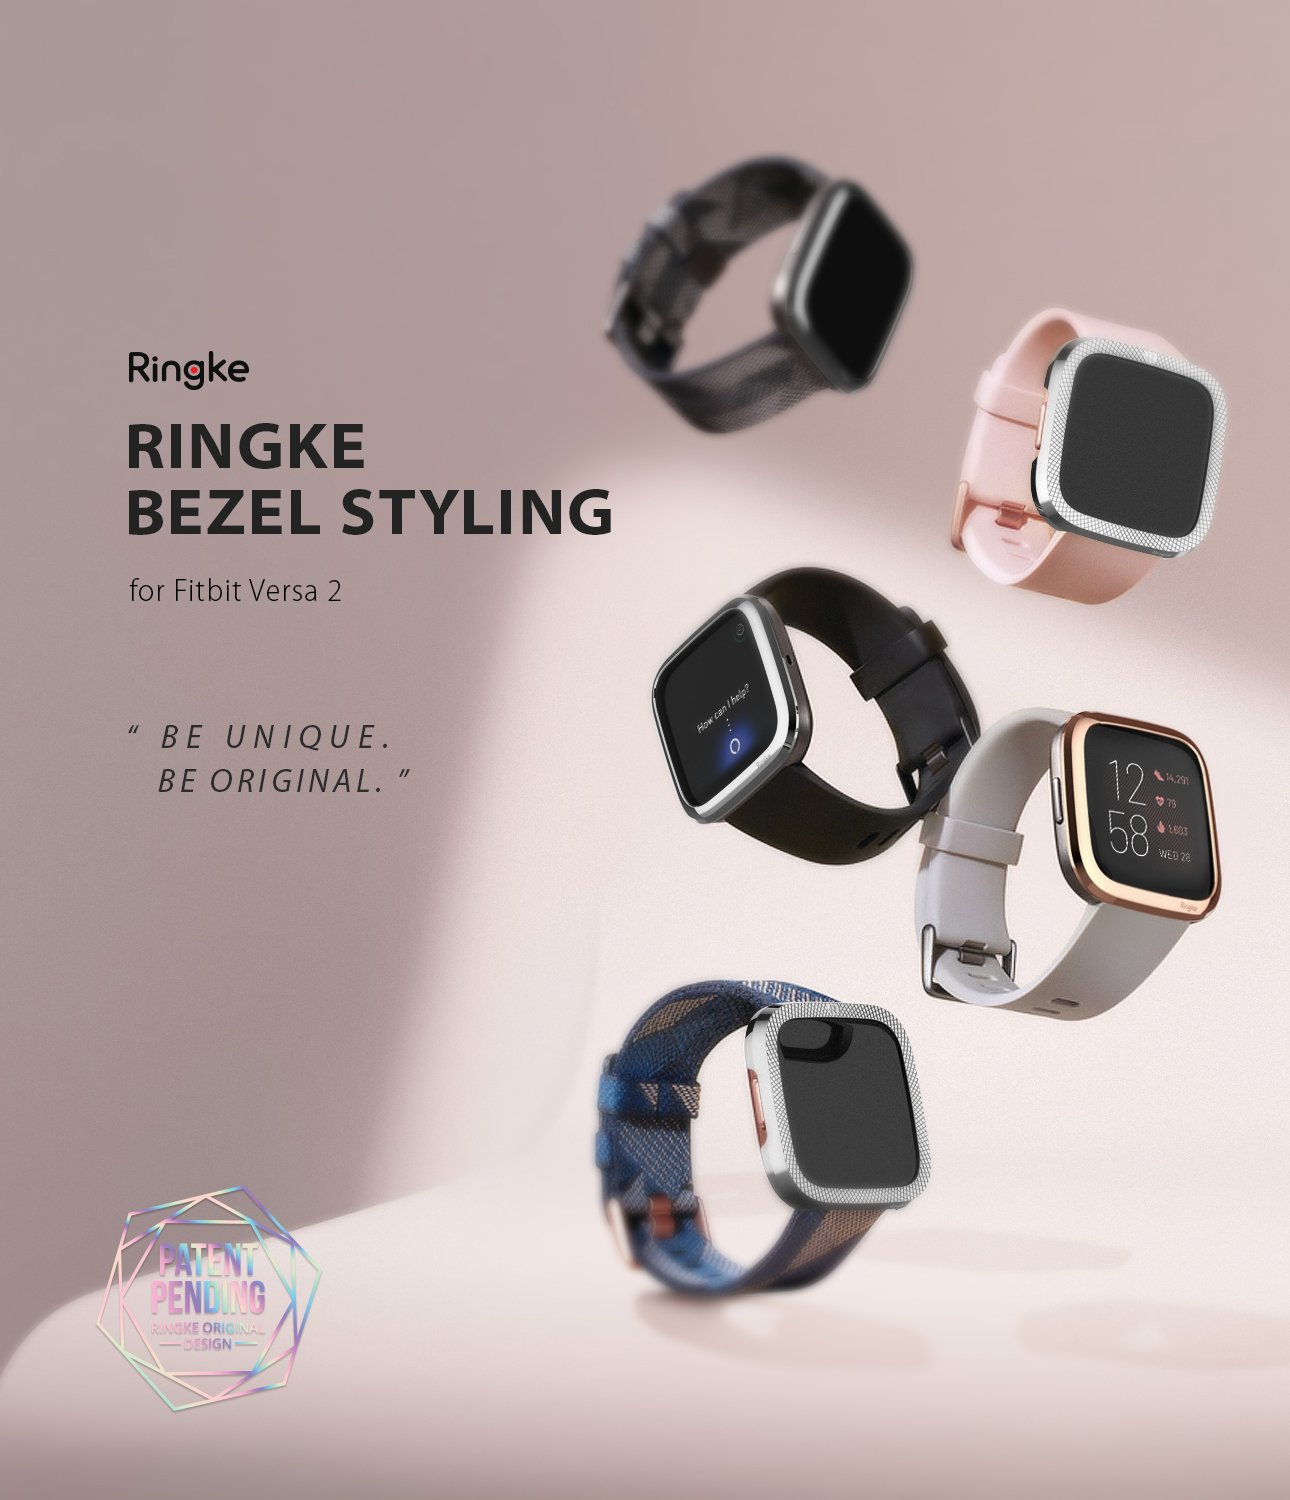 Ringke Bezel Styling Full Stainless Steel Frame Case for Fitbit Versa 2, Silver, 2-42 ST, Knurling Engraved Design